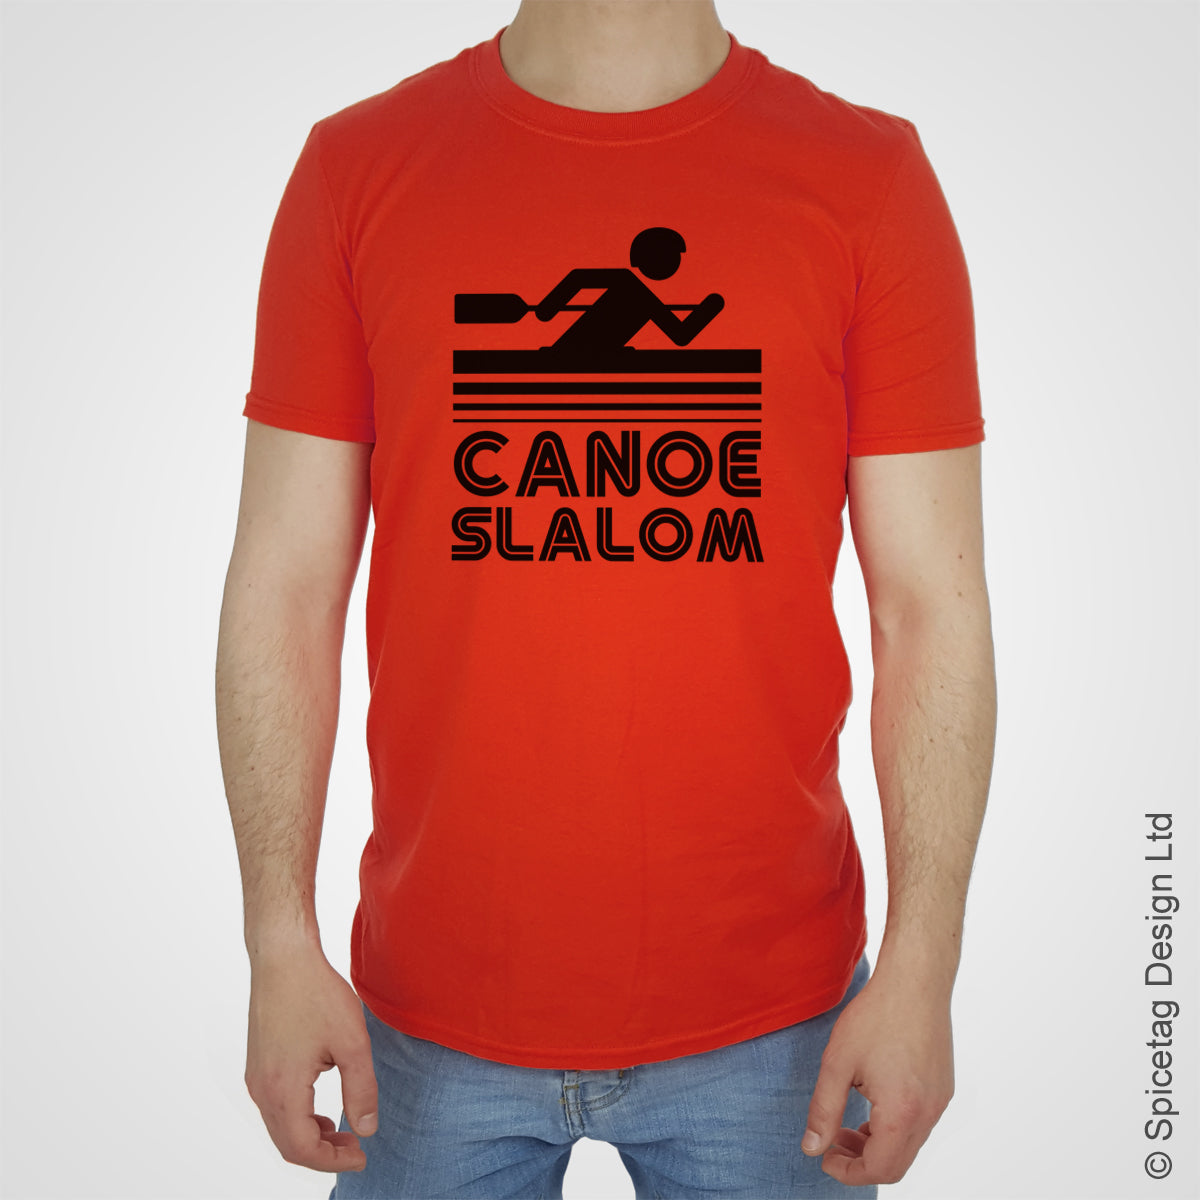 Canoe slalom T-shirt canoeing Tshirt T shirt Tee clothing clothes fashion style sport sports fan olympics athletics track field health fitness world competition champion